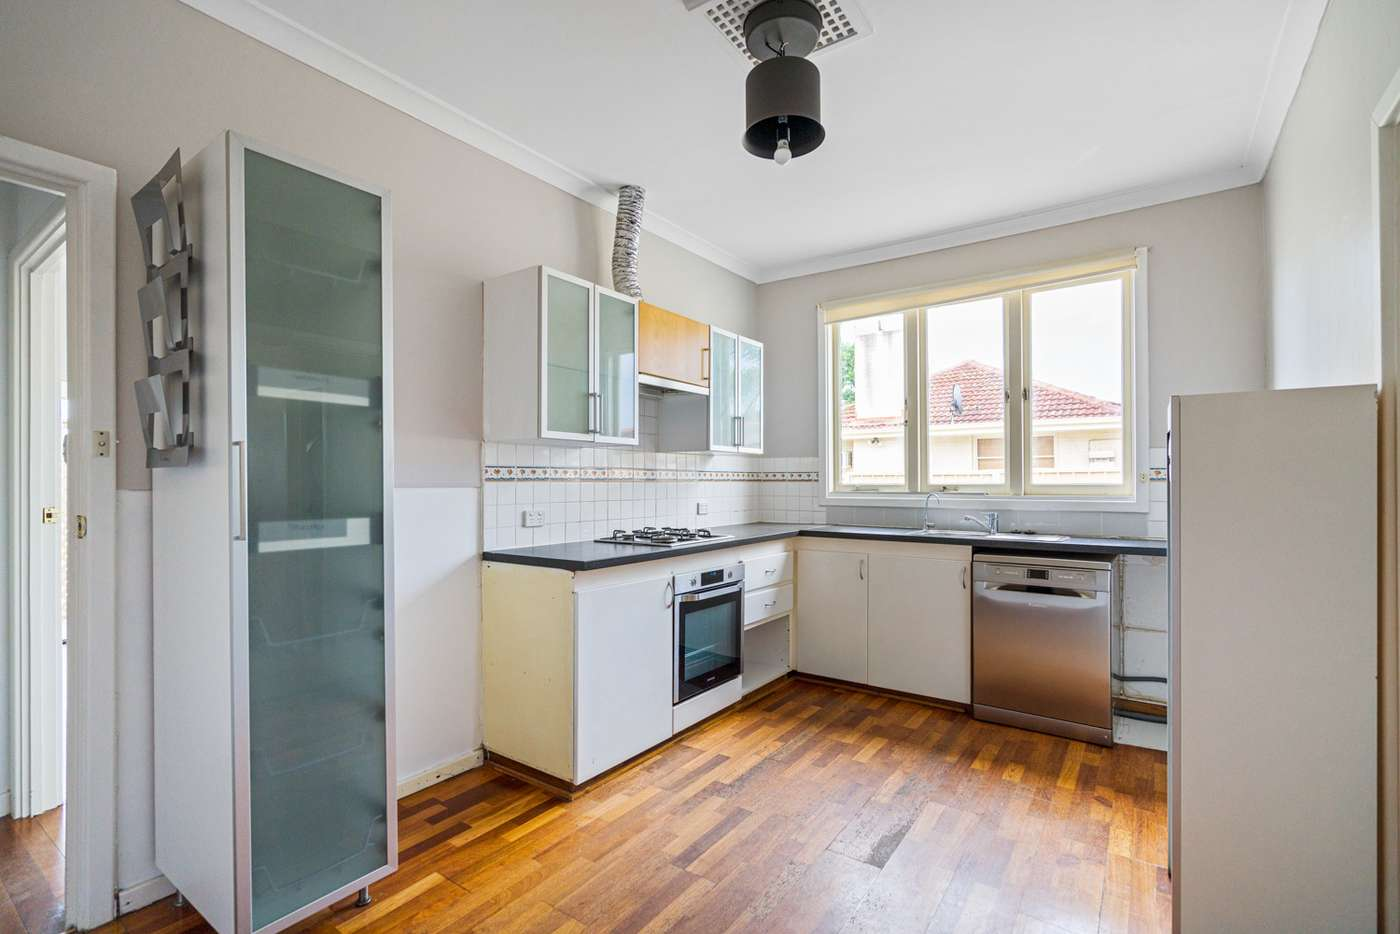 Main view of Homely house listing, 25 Goneril Way, Coolbellup WA 6163